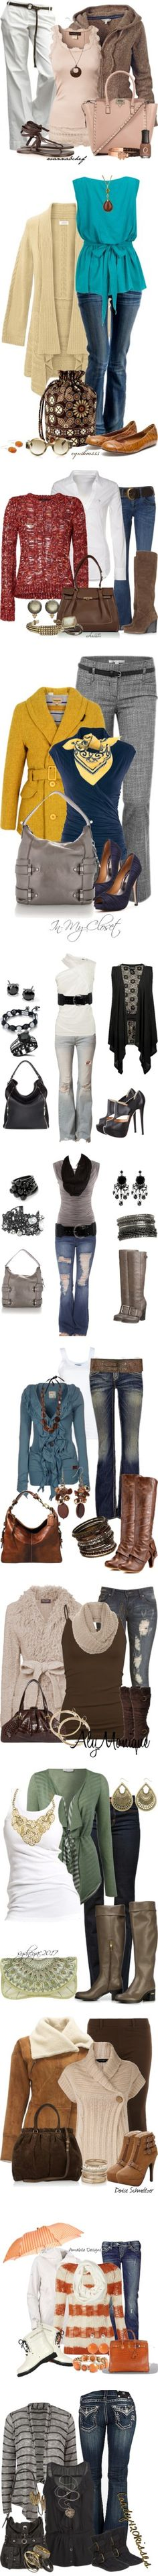 """Outfits I love"" by addisonhouston ❤ liked on Polyvore"